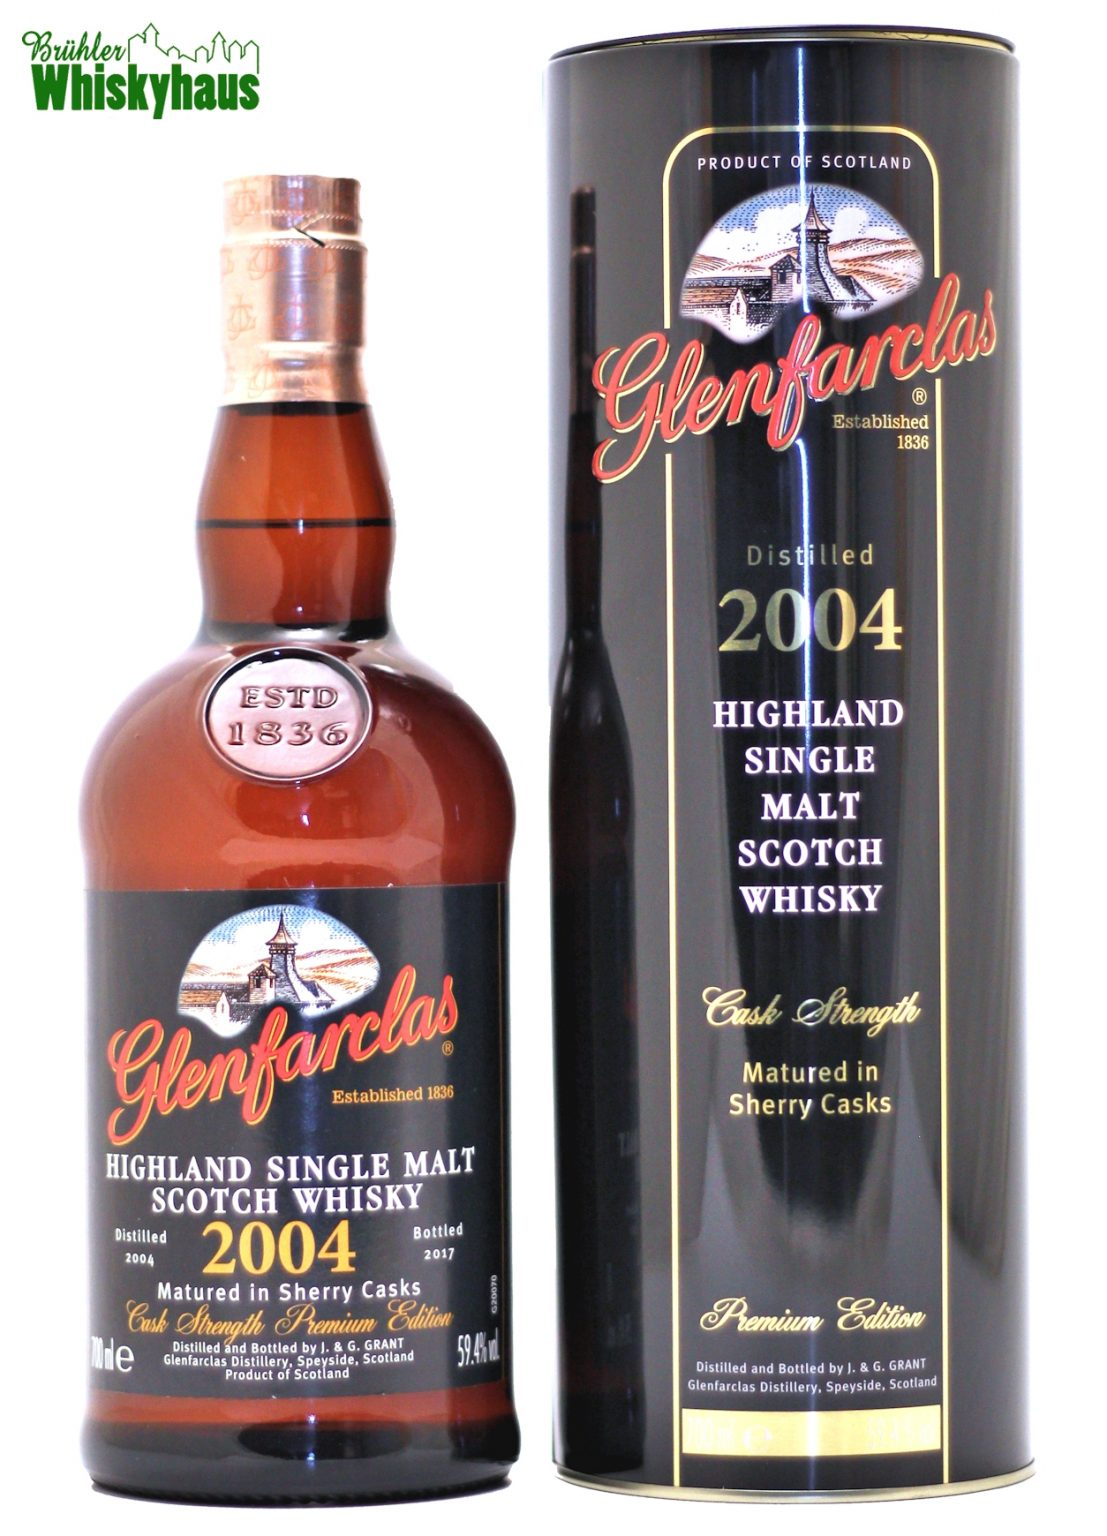 Glenfarclas Vintage 2004 - Cask Strength Premium Edition - Sherry Casks Matured - Single Malt Scotch Whisky